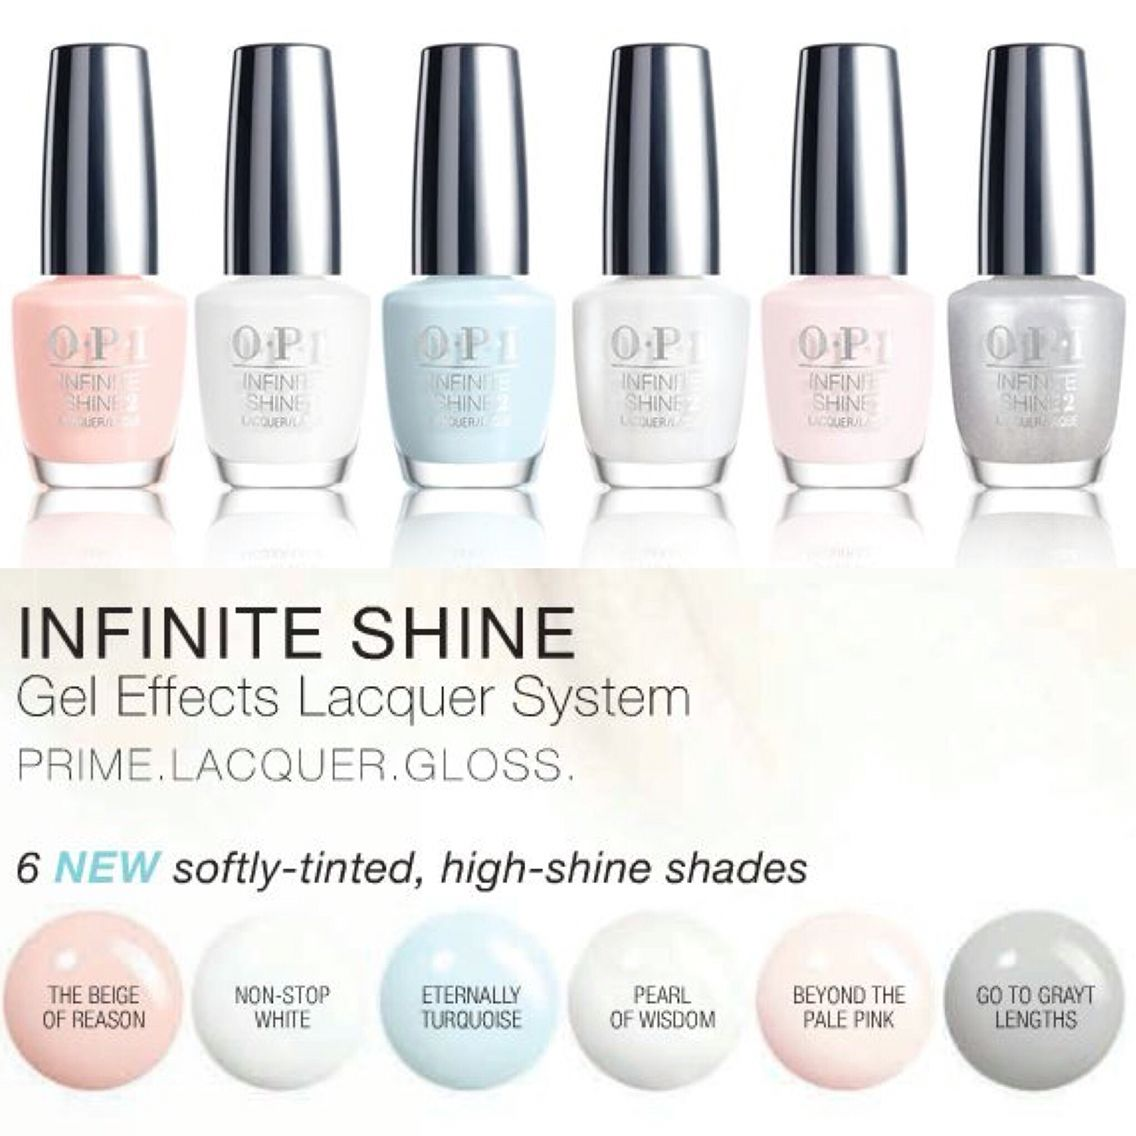 Opi Infinite Shine Gel Effects Lacquer First Impressions